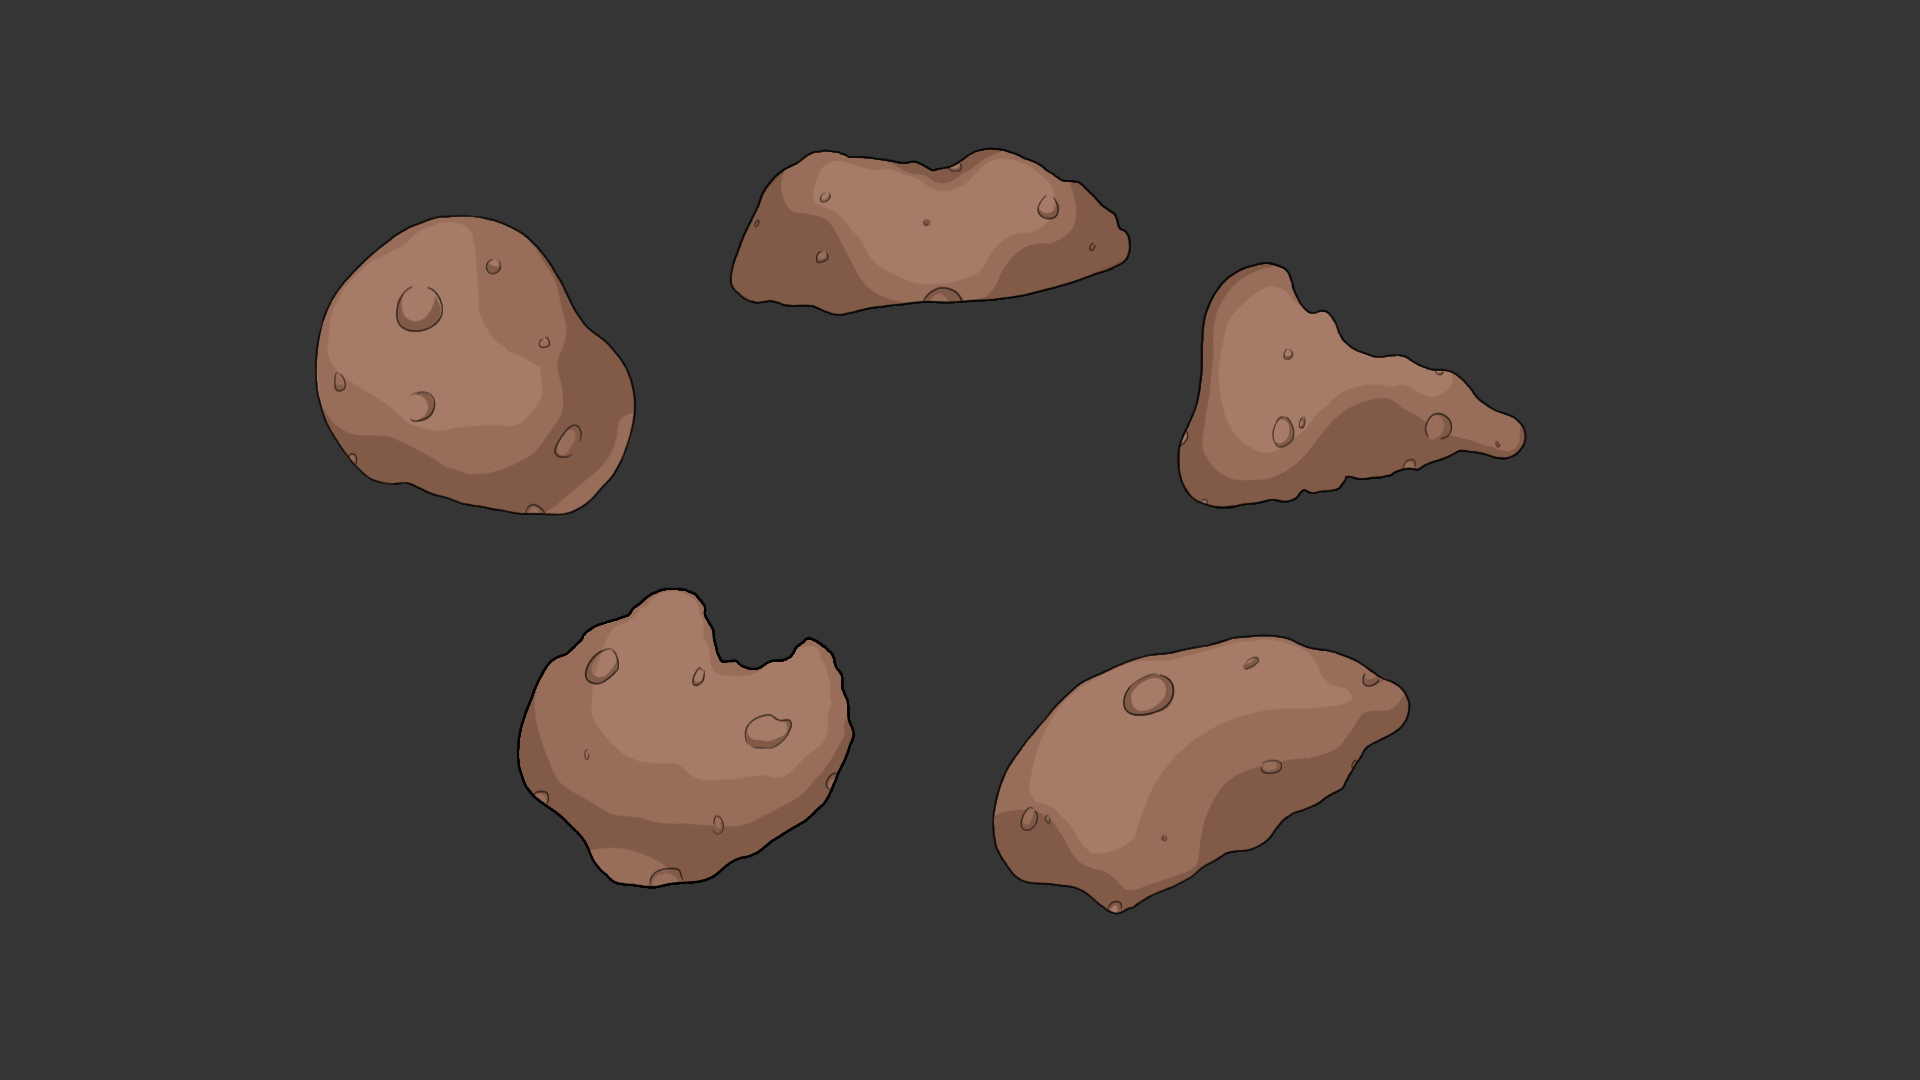 02282018spaceshipSilhouette_asteroid.png